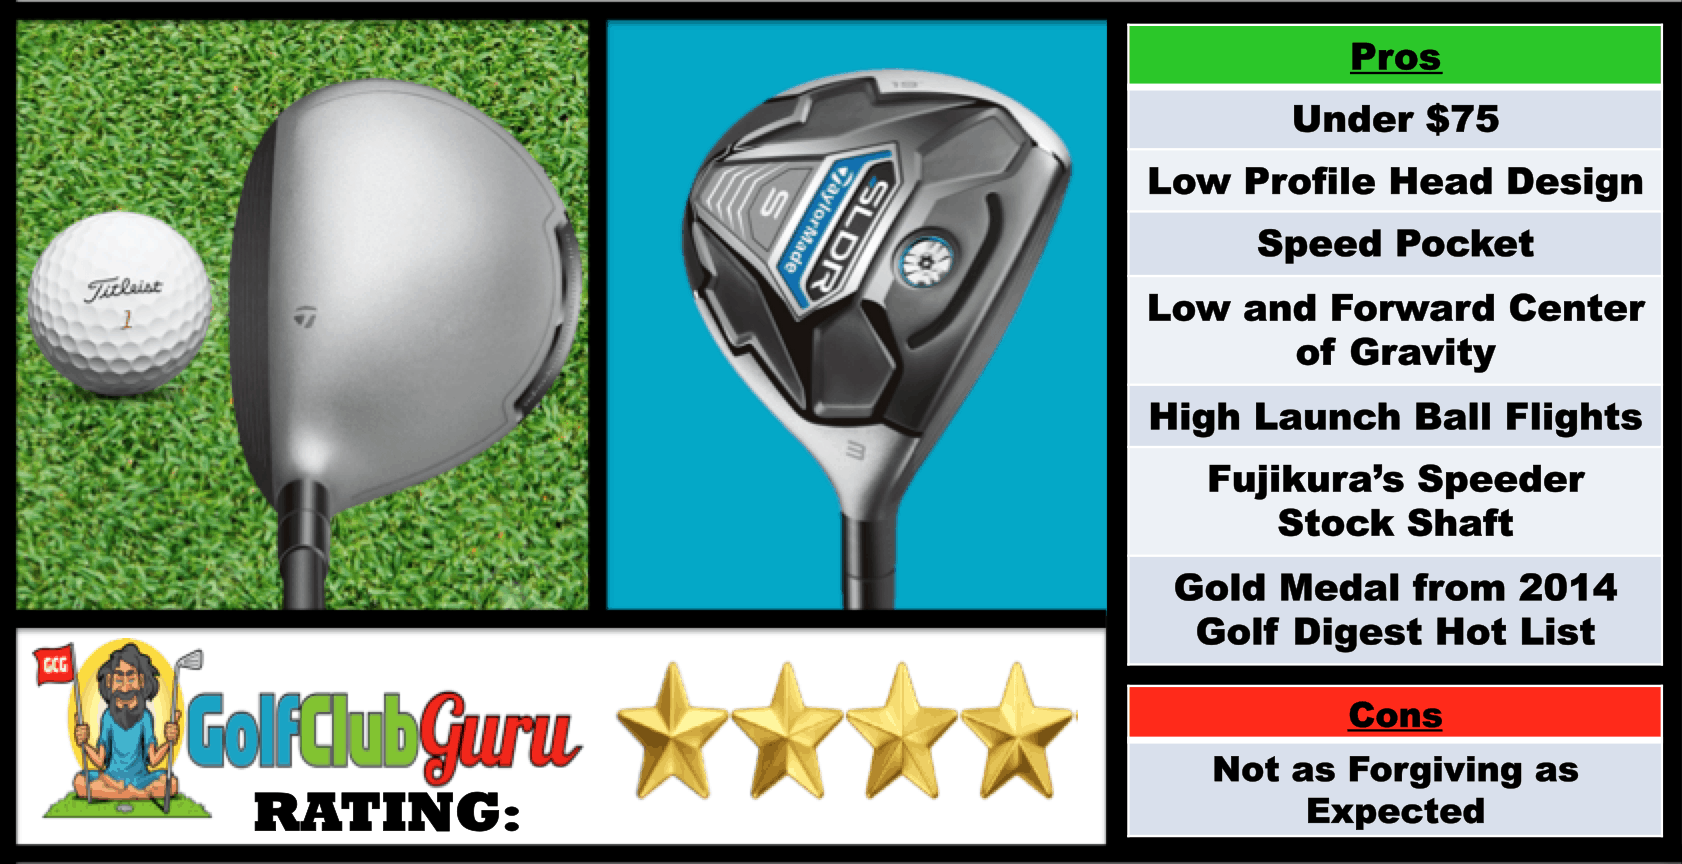 If You Find Yourself Hitting Fairway Woods Too Low Often Then The Taylormade Sldr S Is An Exceptional Club For It In My Opinion